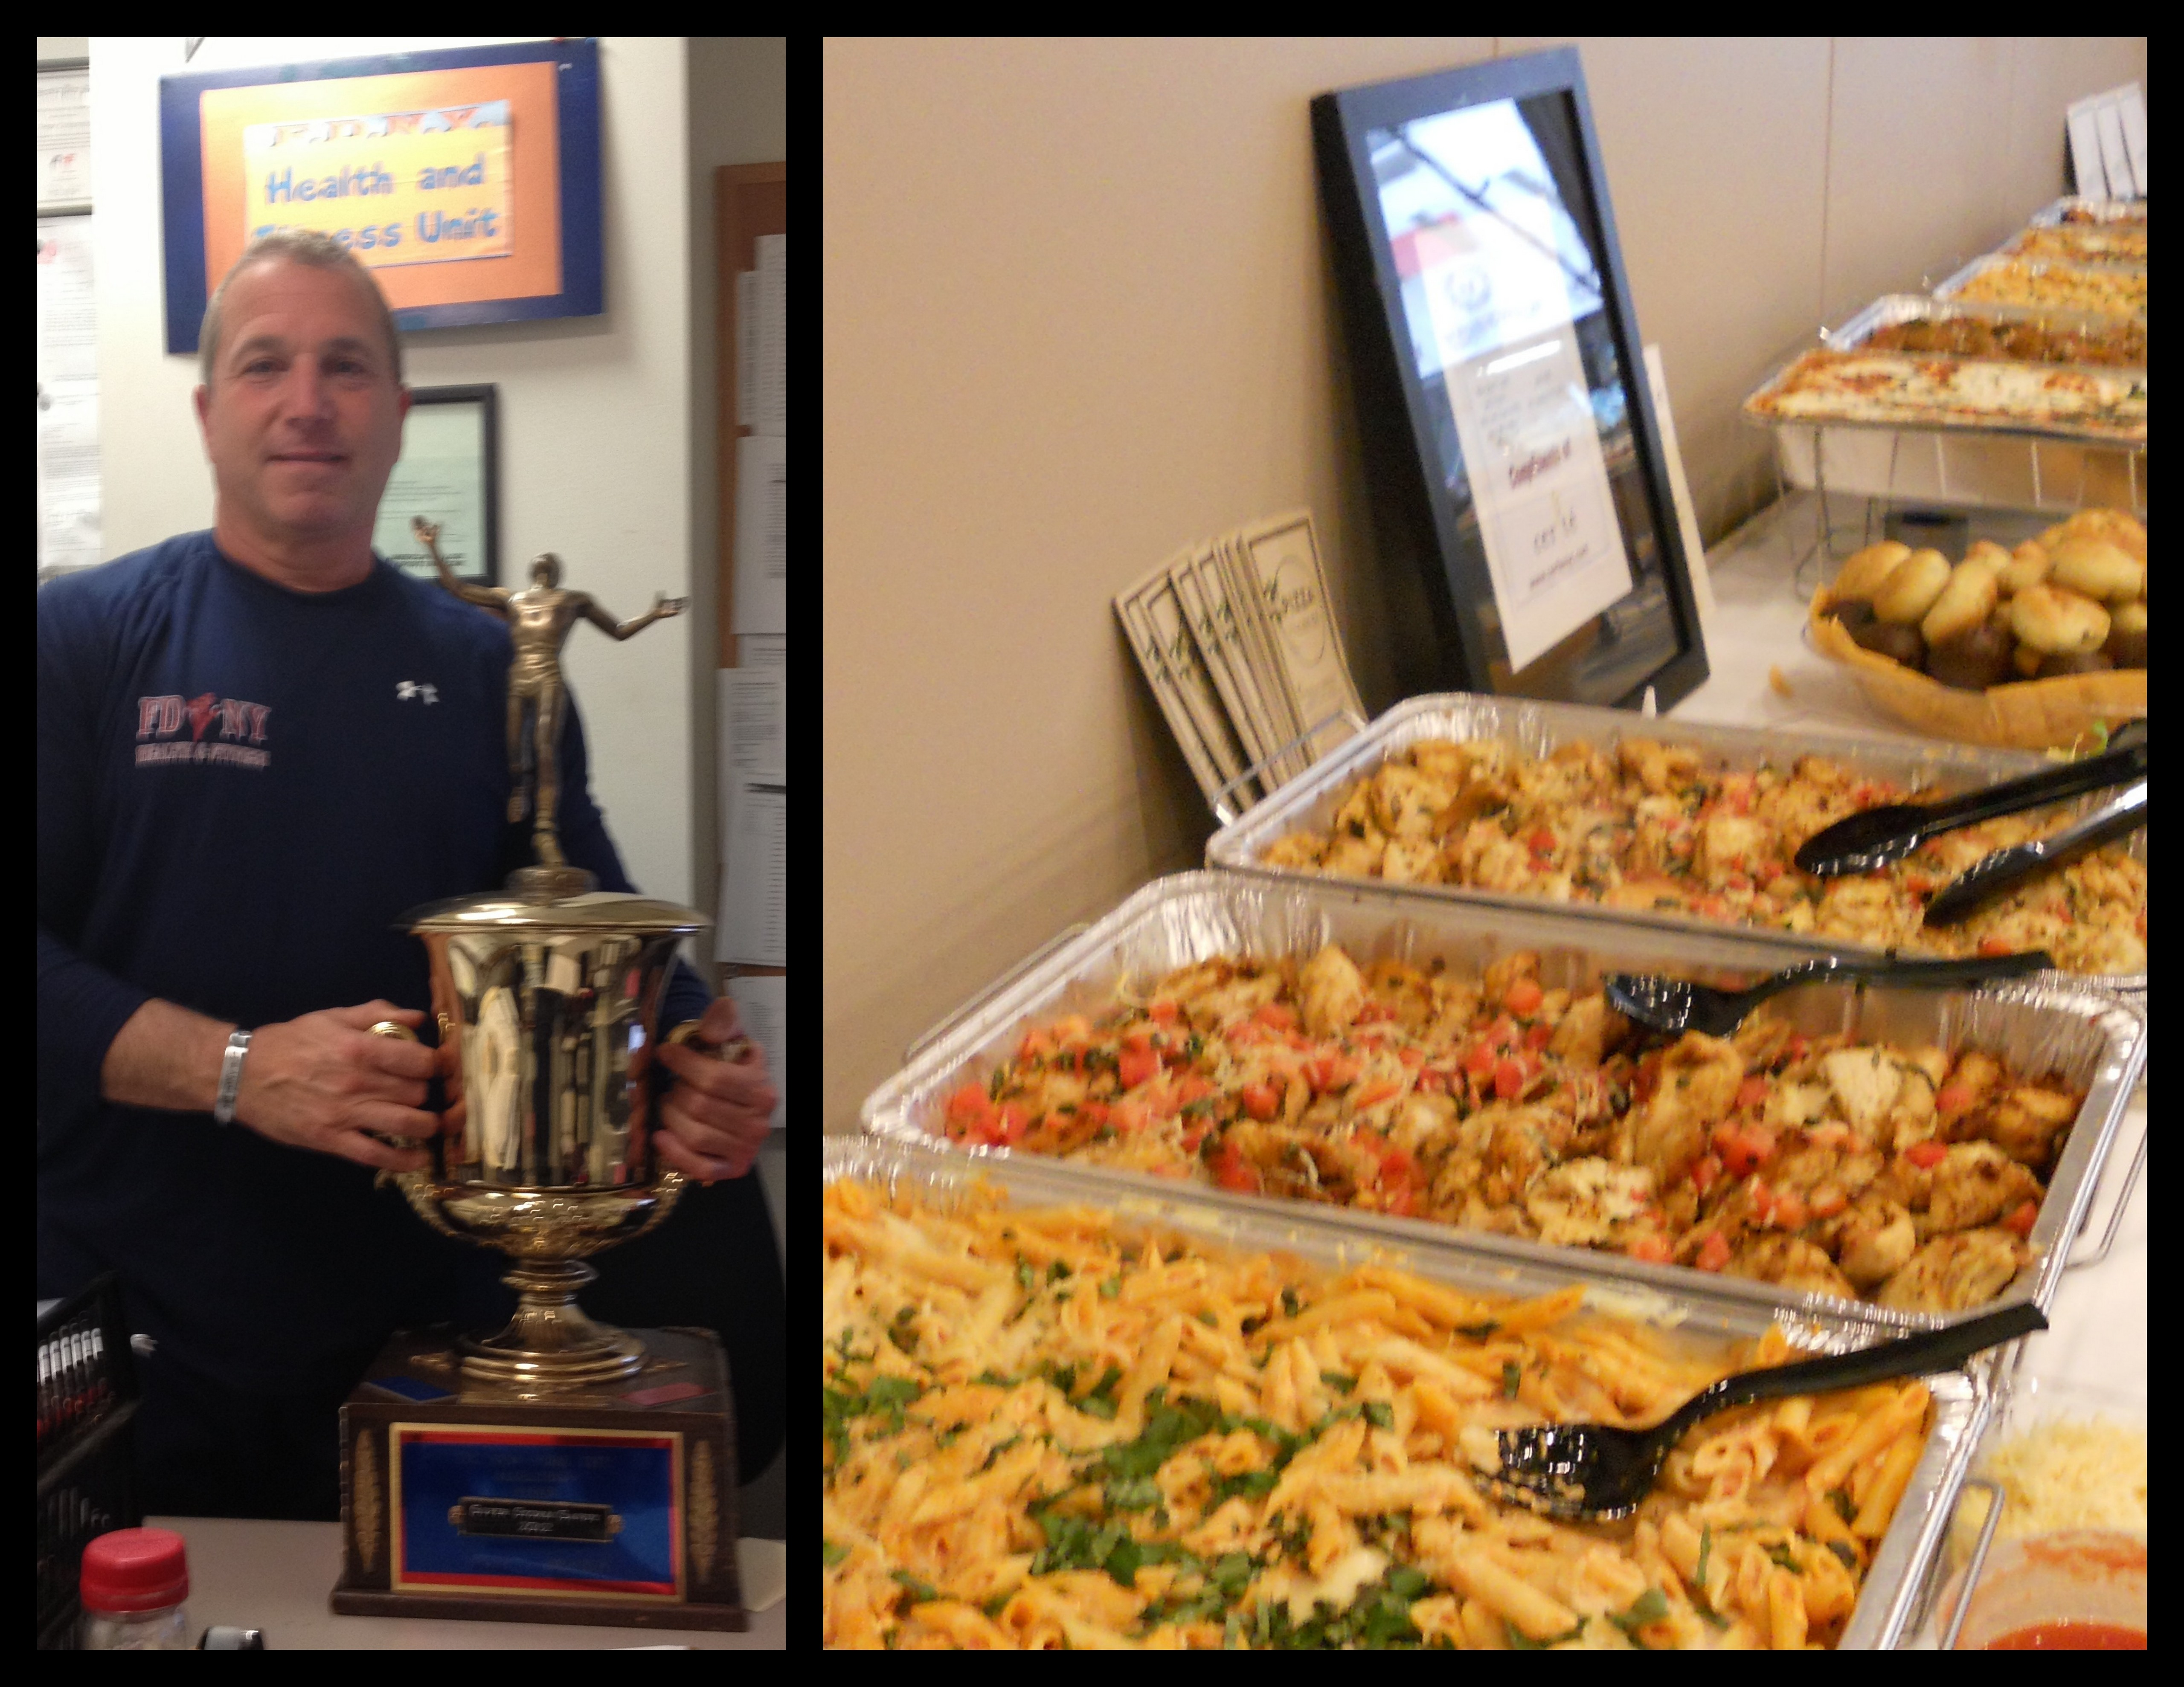 FDNY NYC Marthon 2013.buffet.collage